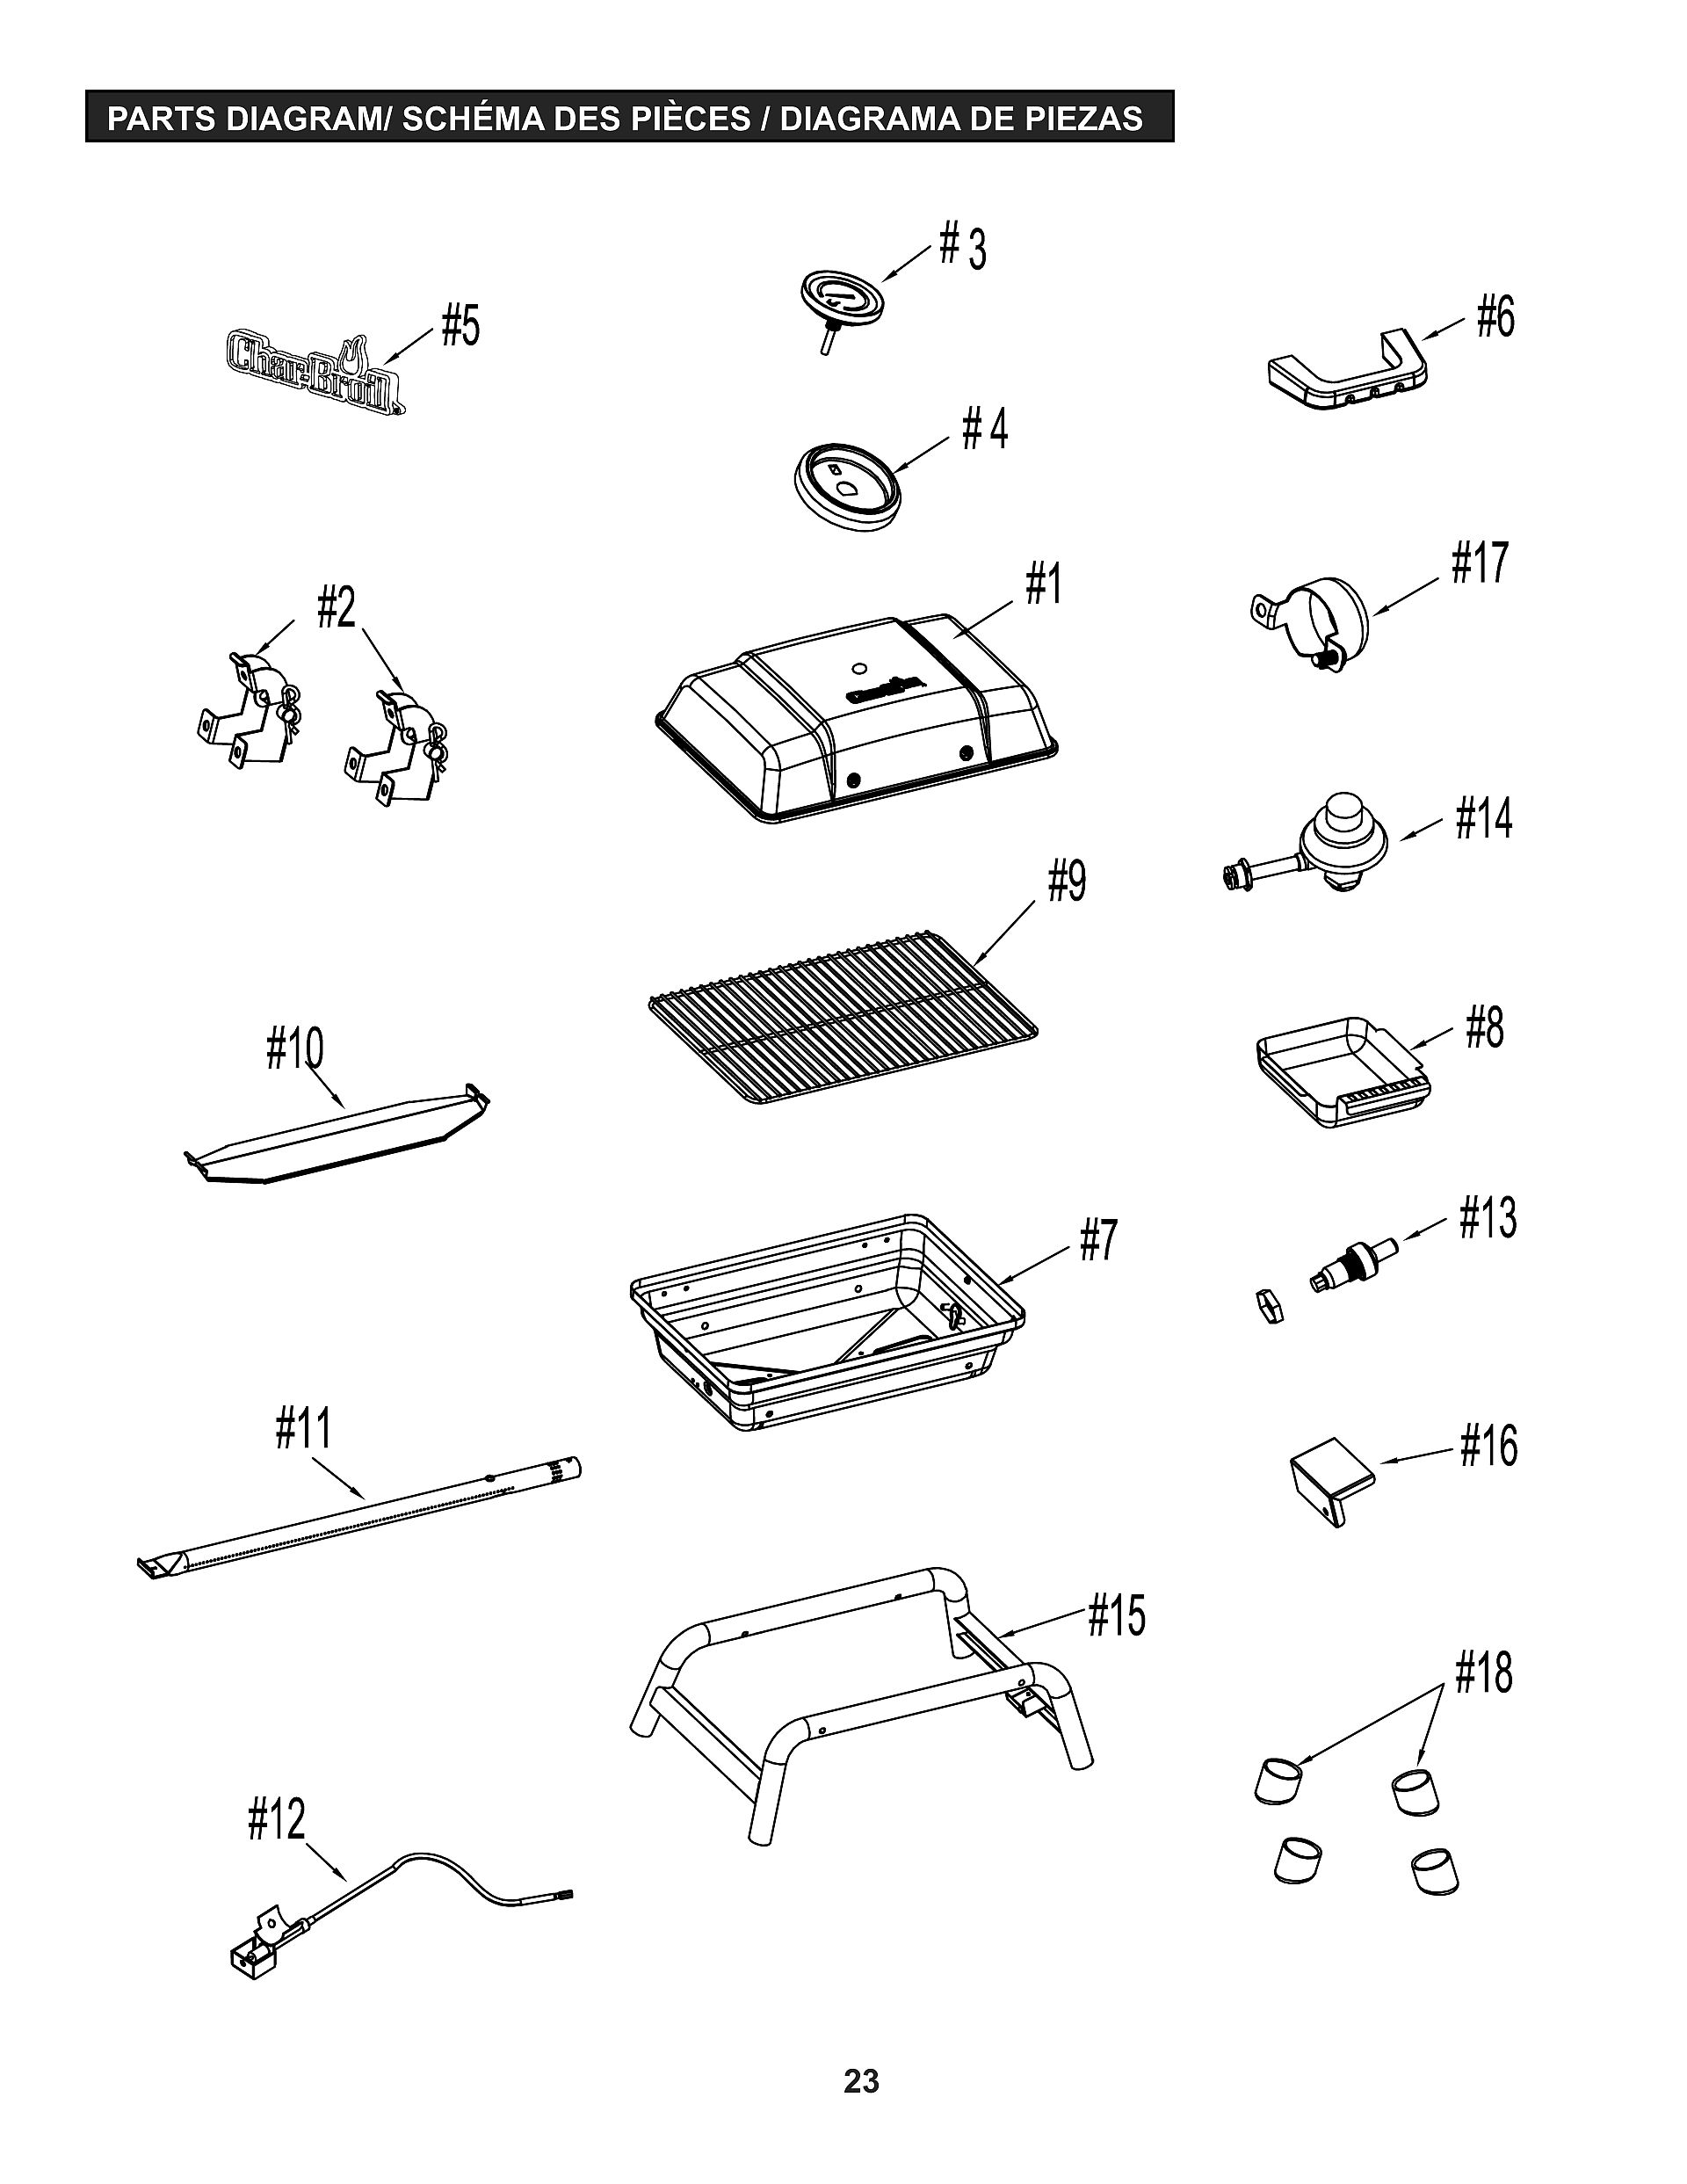 portable gas grill view schematic warranty information - Char Broil Gas Grill Parts